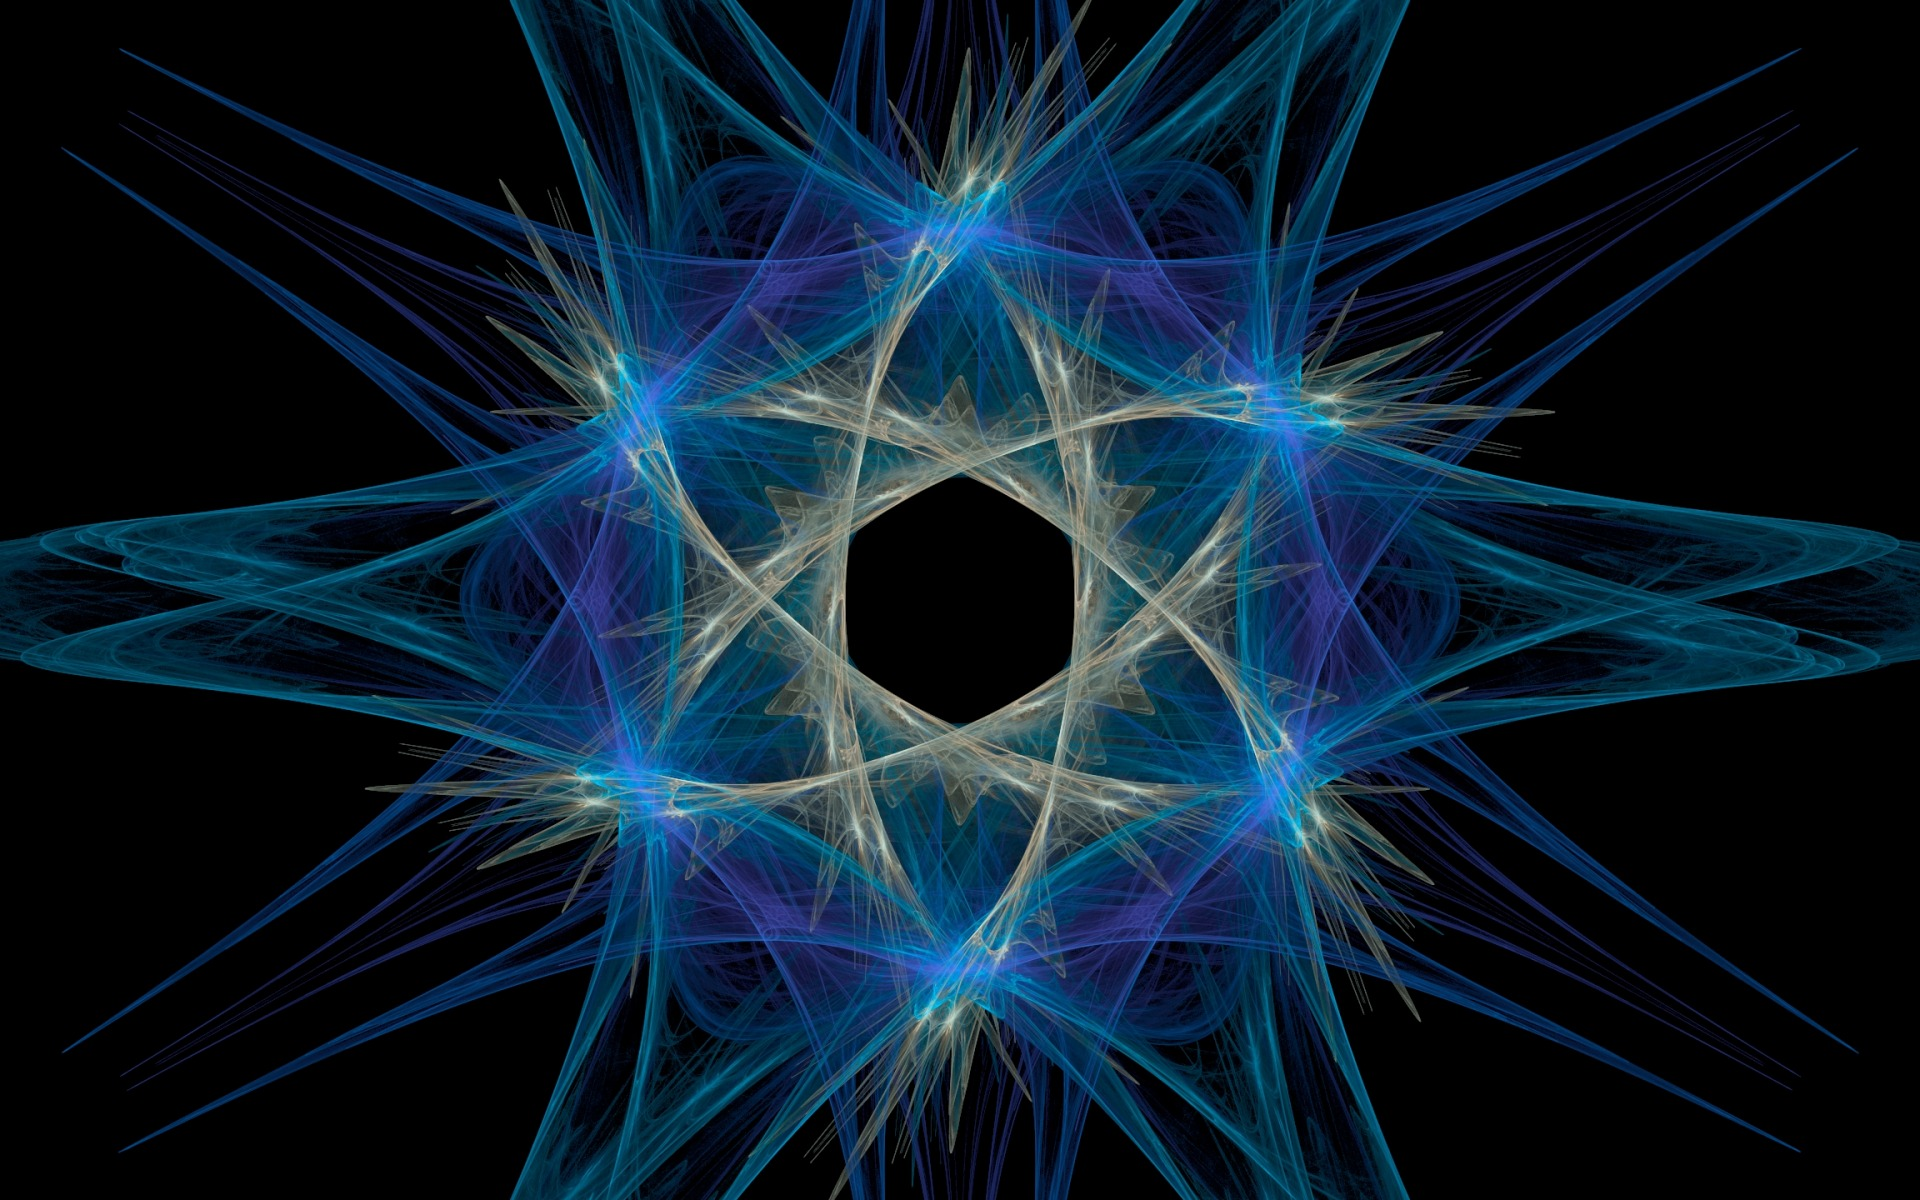 Iphone Moving Wallpaper Iphone X Blue Flame Star Fractal Wallpapers Blue Flame Star